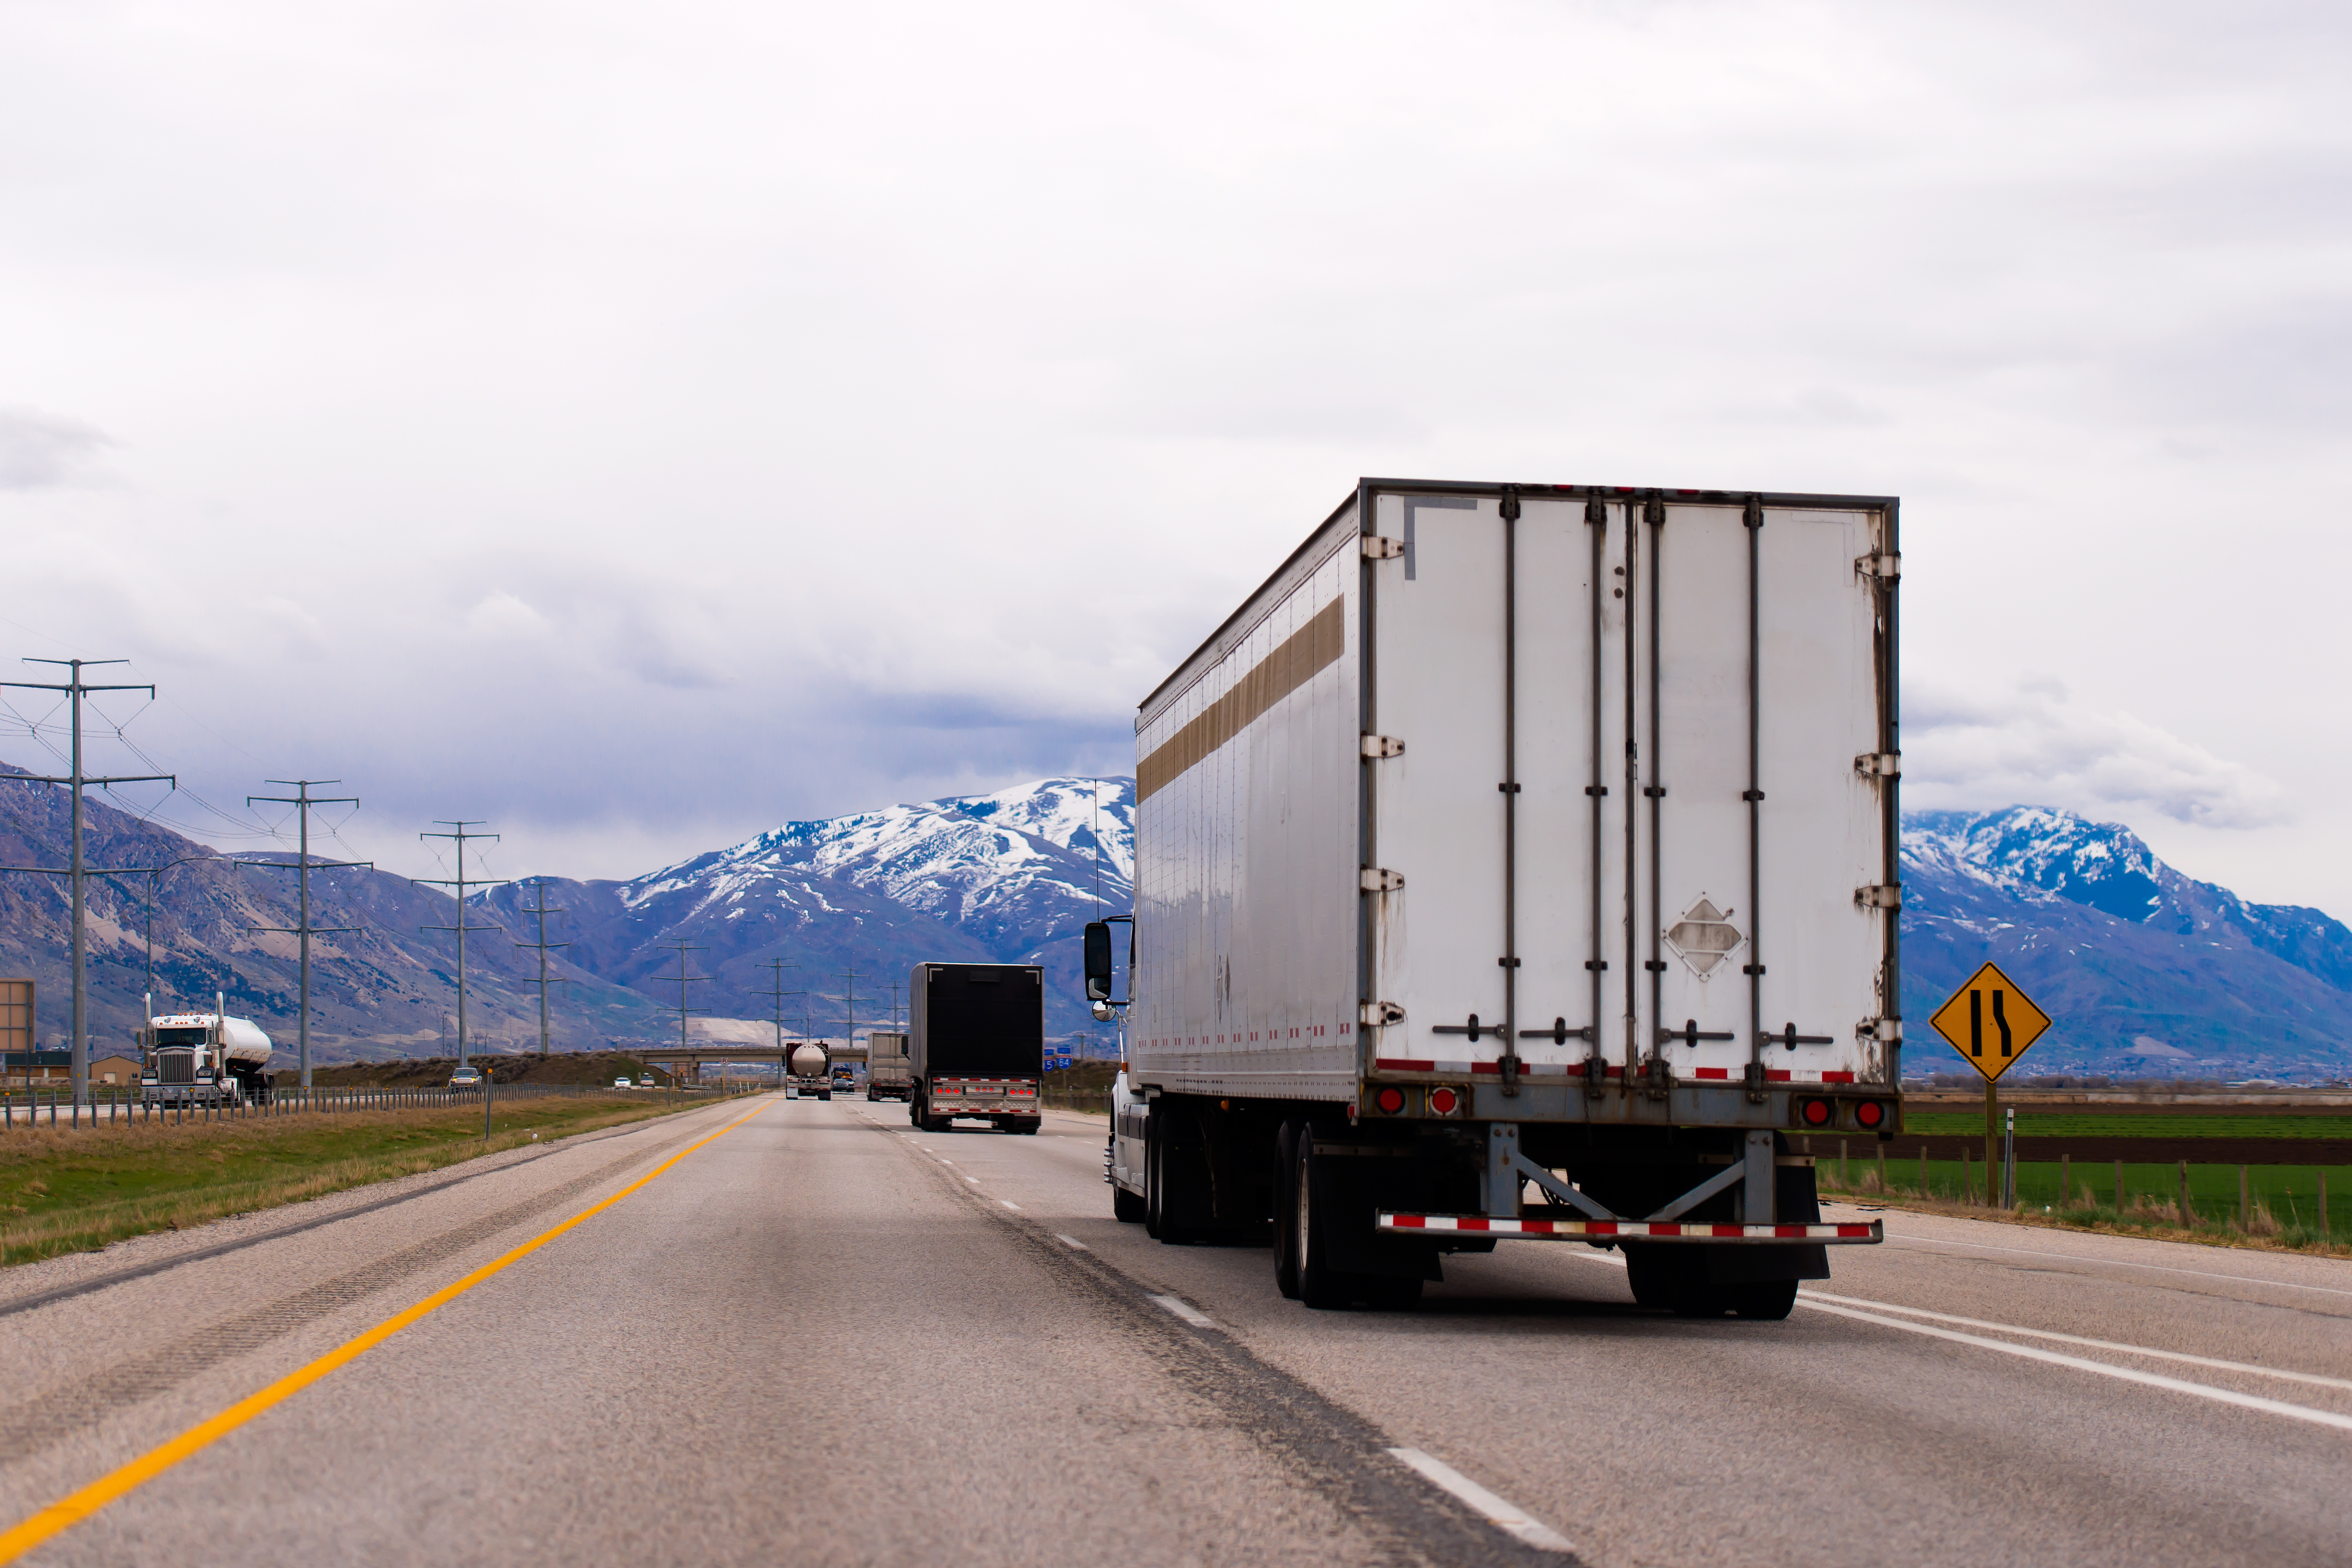 truck driving into the distance